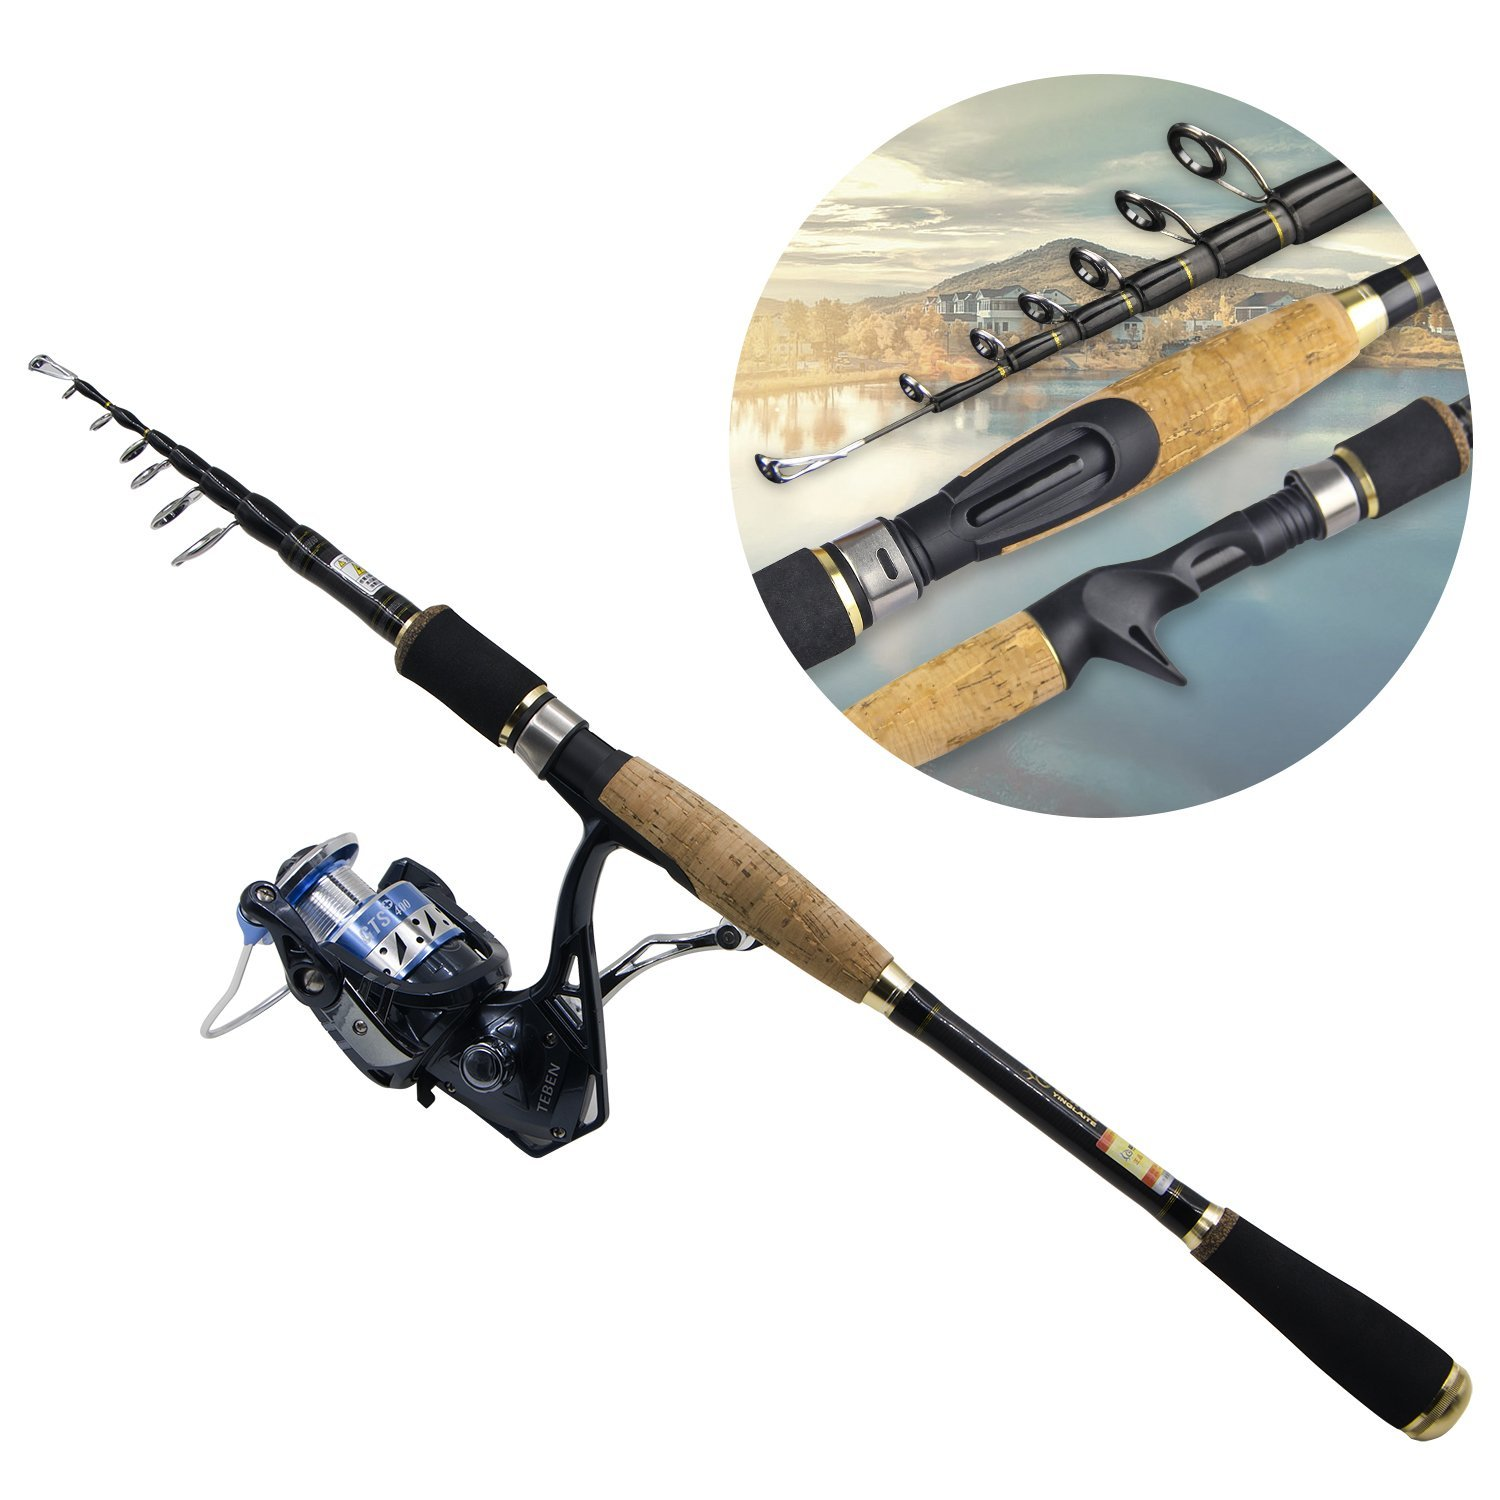 cheap best trout fishing rods, find best trout fishing rods deals onfishing rods saltwater trout travel compact portable telescopic graphite carbon fiber fishing poles for freshwater bass